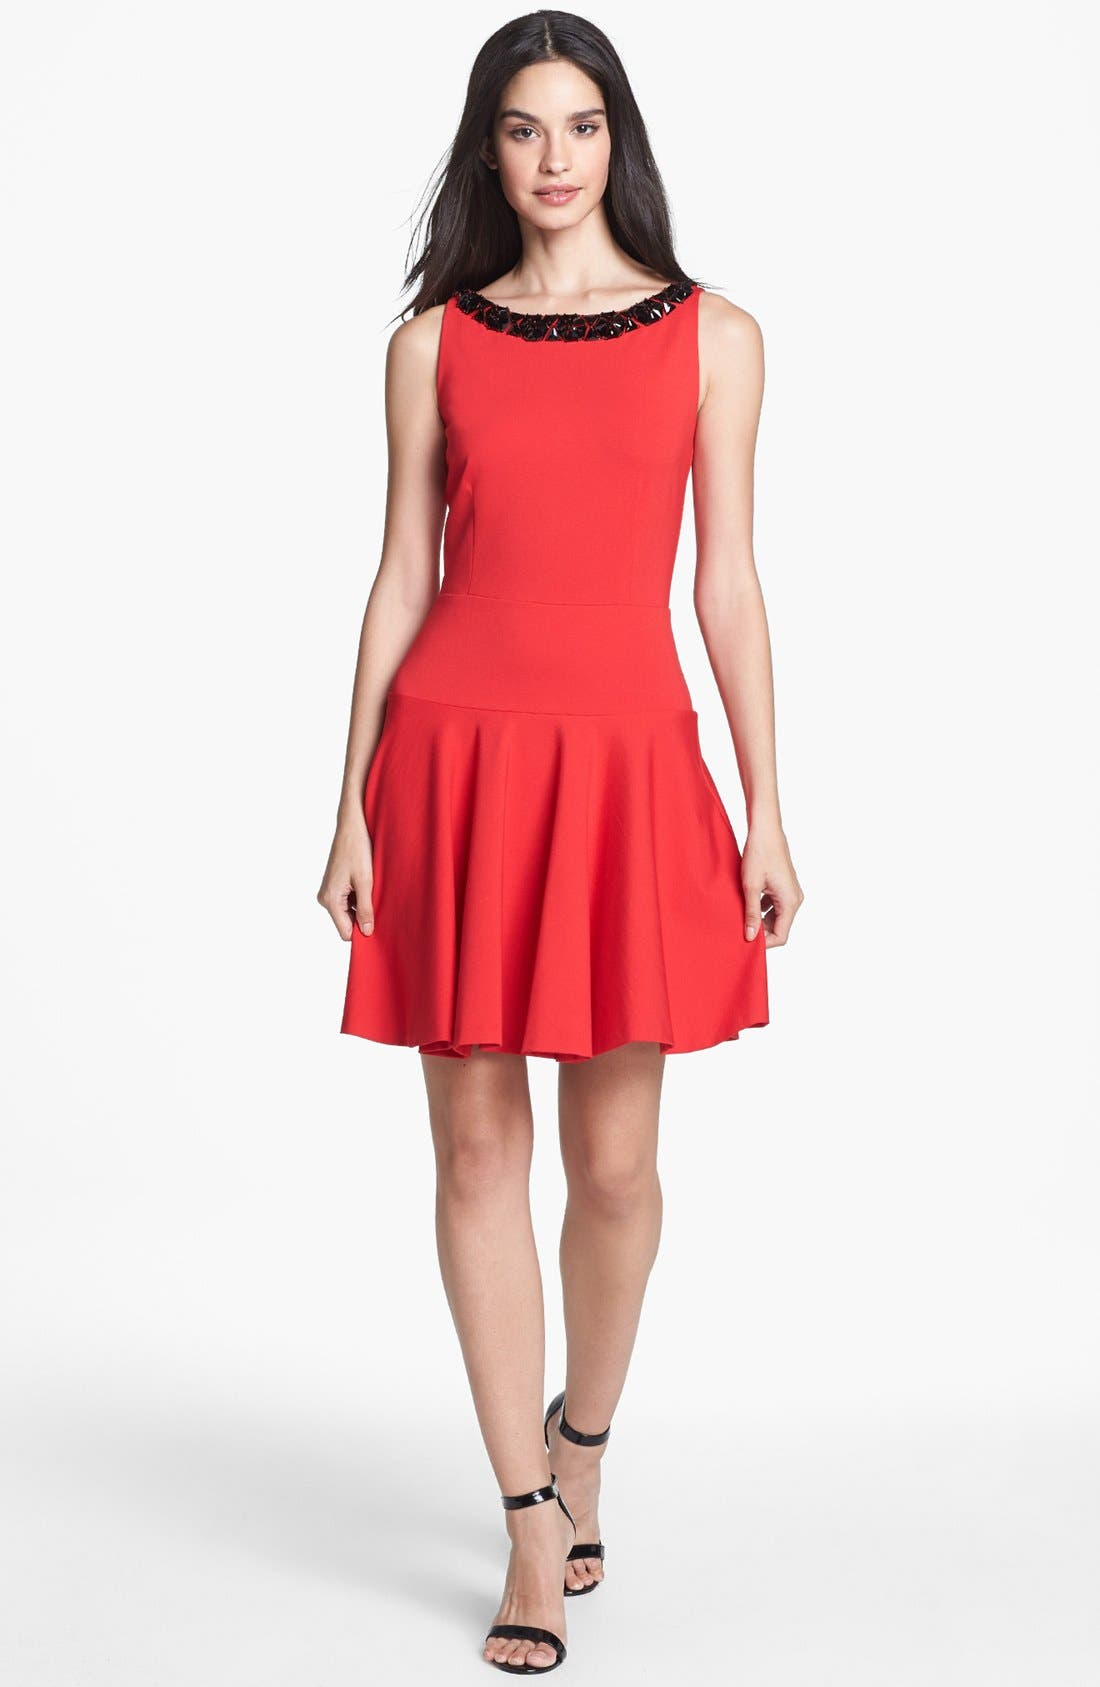 Main Image - ERIN erin fetherston 'Eleanor' Embellished Fit & Flare Dress